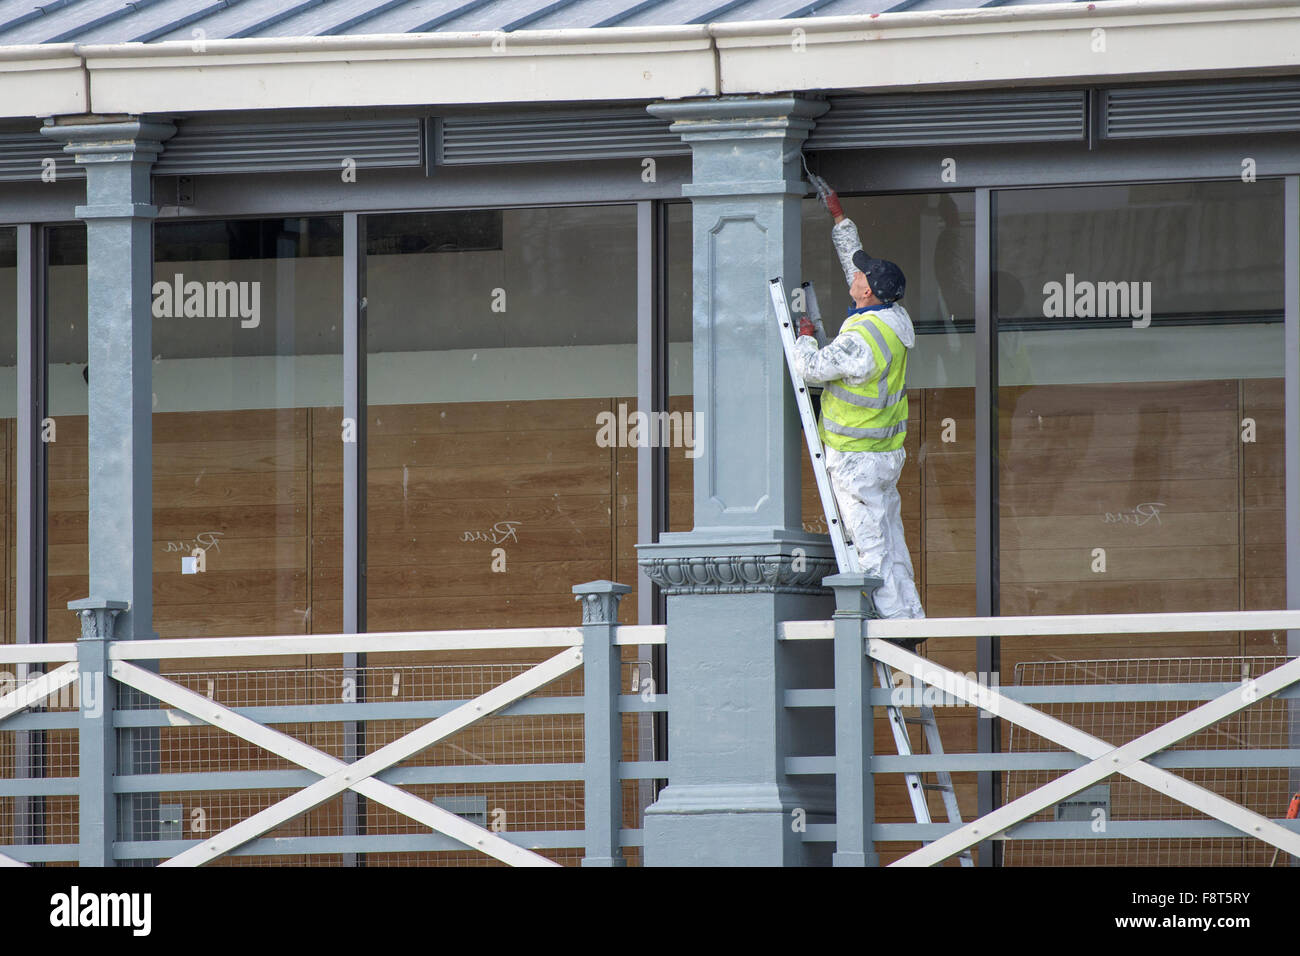 A painter painting a pillar on Town Pier in Gravesend, Kent. - Stock Image